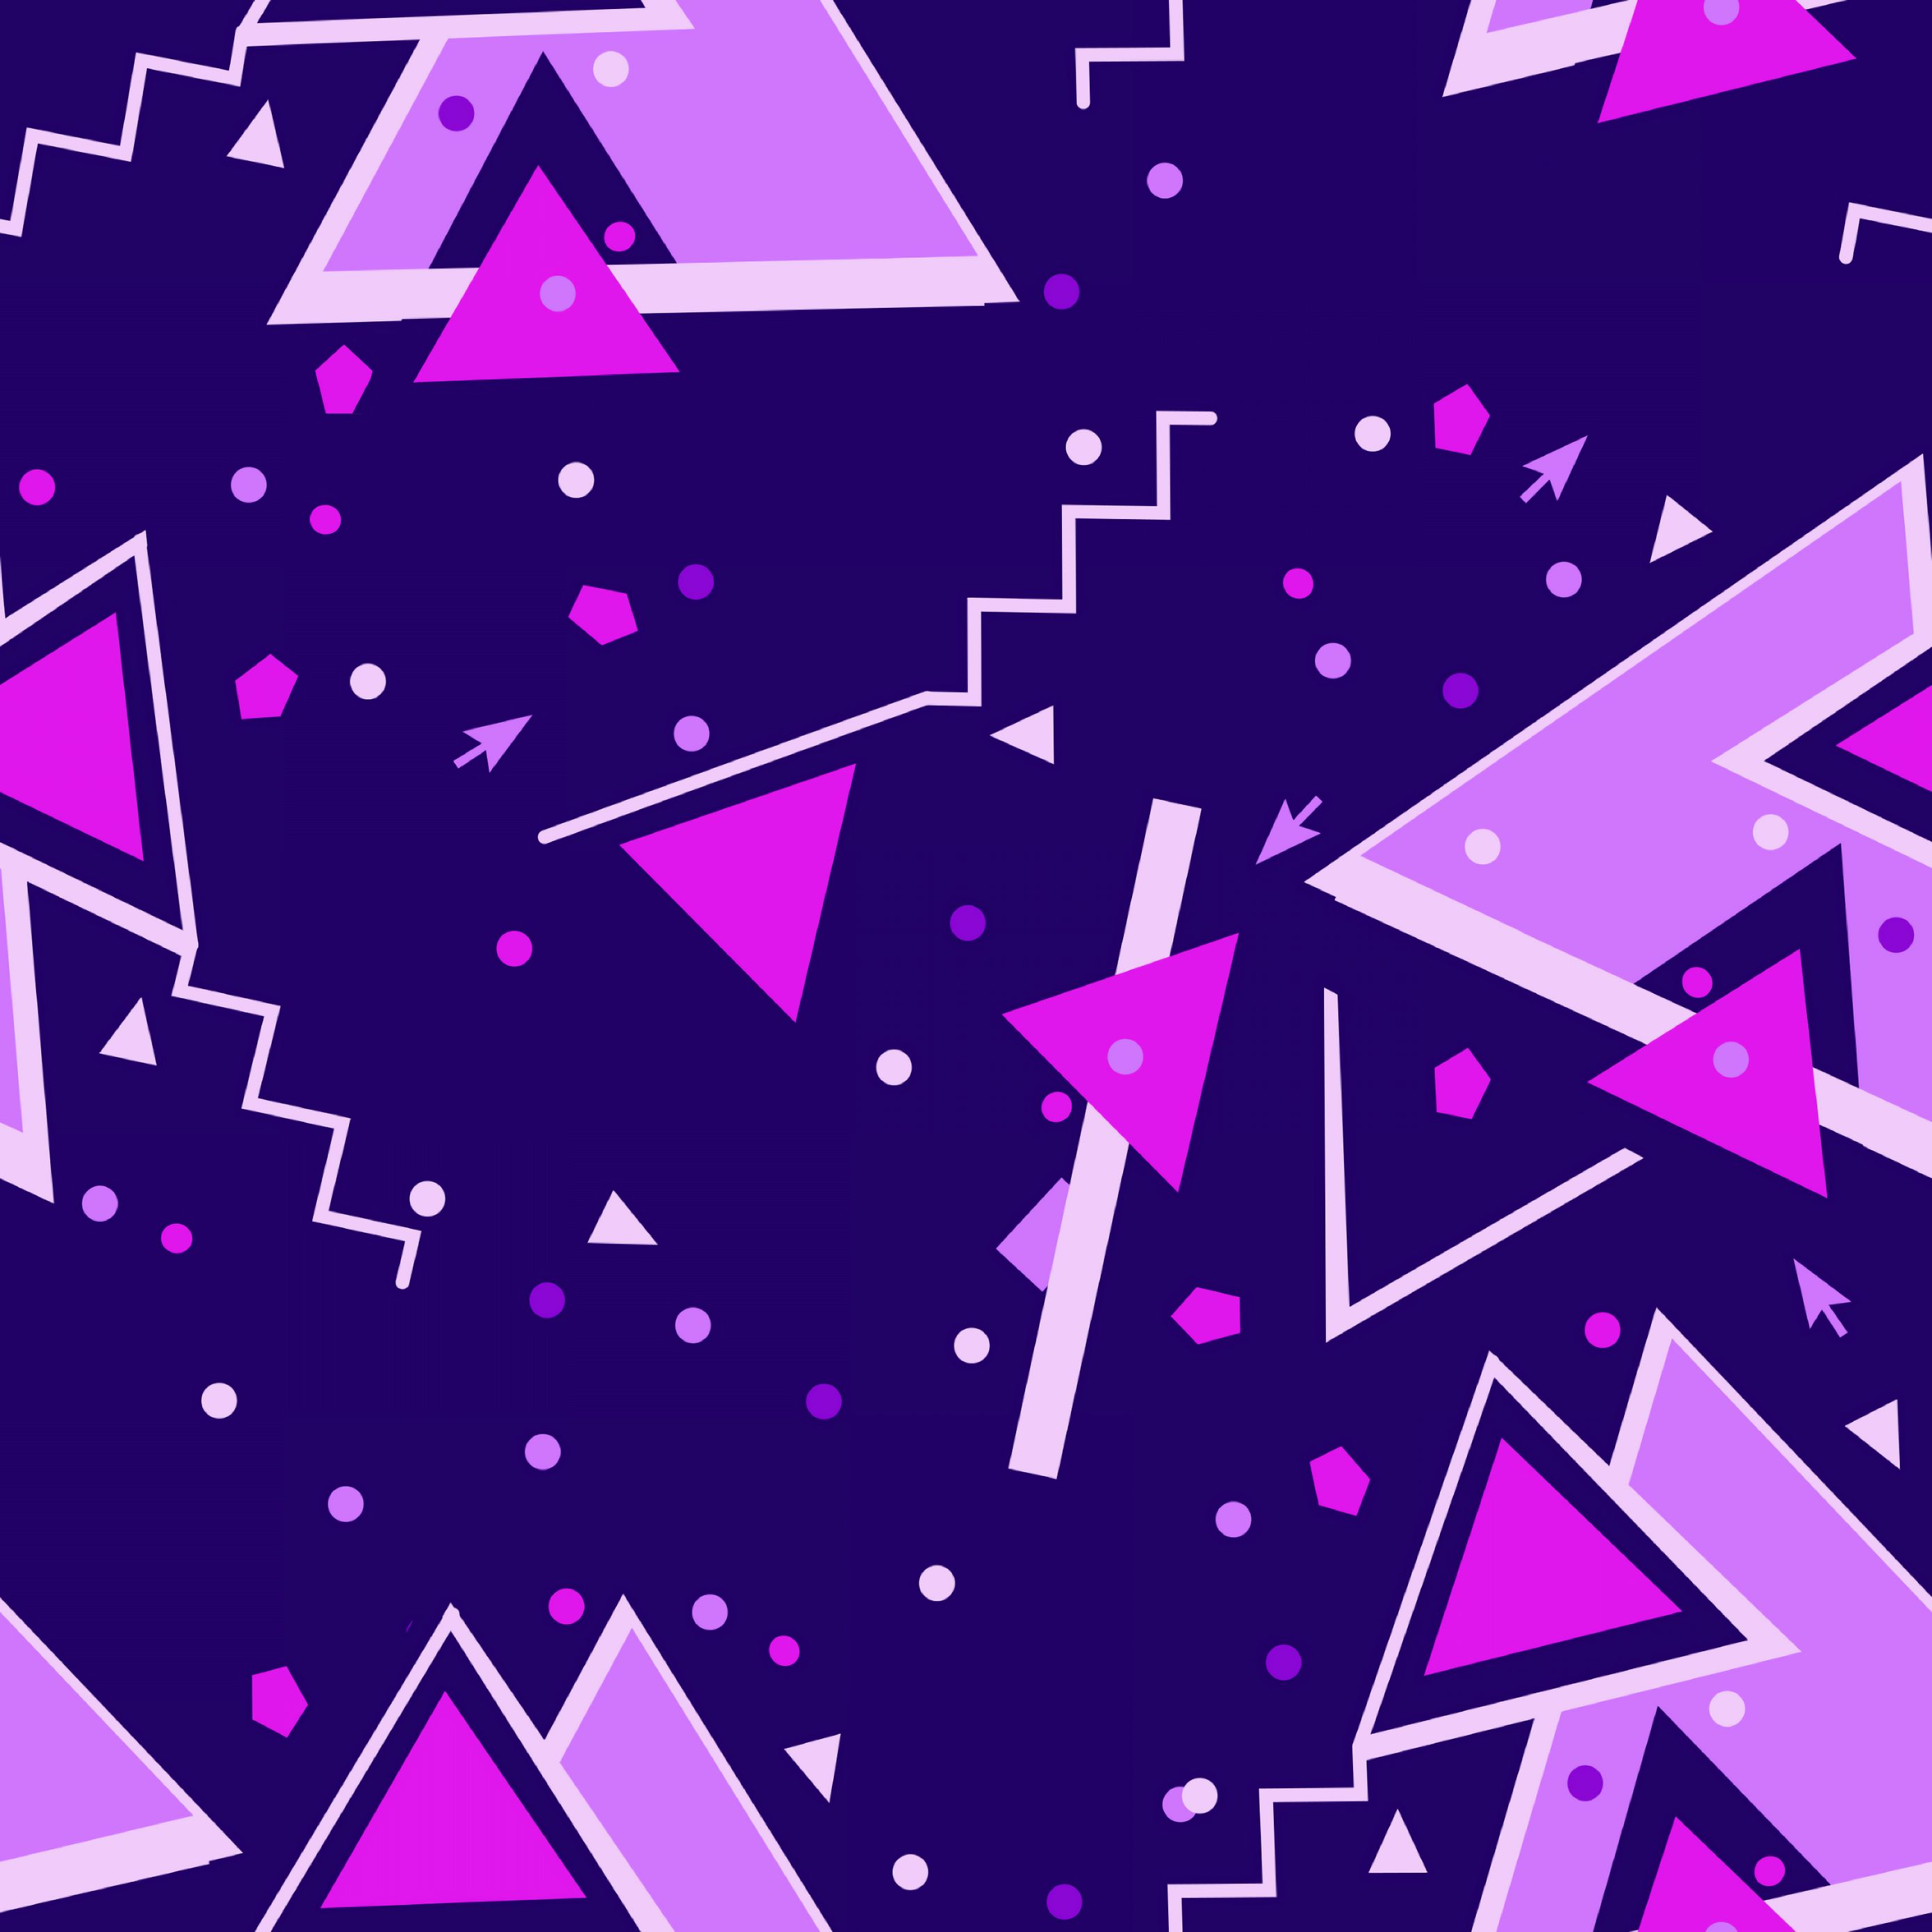 2780x2780 Wallpaper triangles, triangle, colorful, geometric, lines, shapes